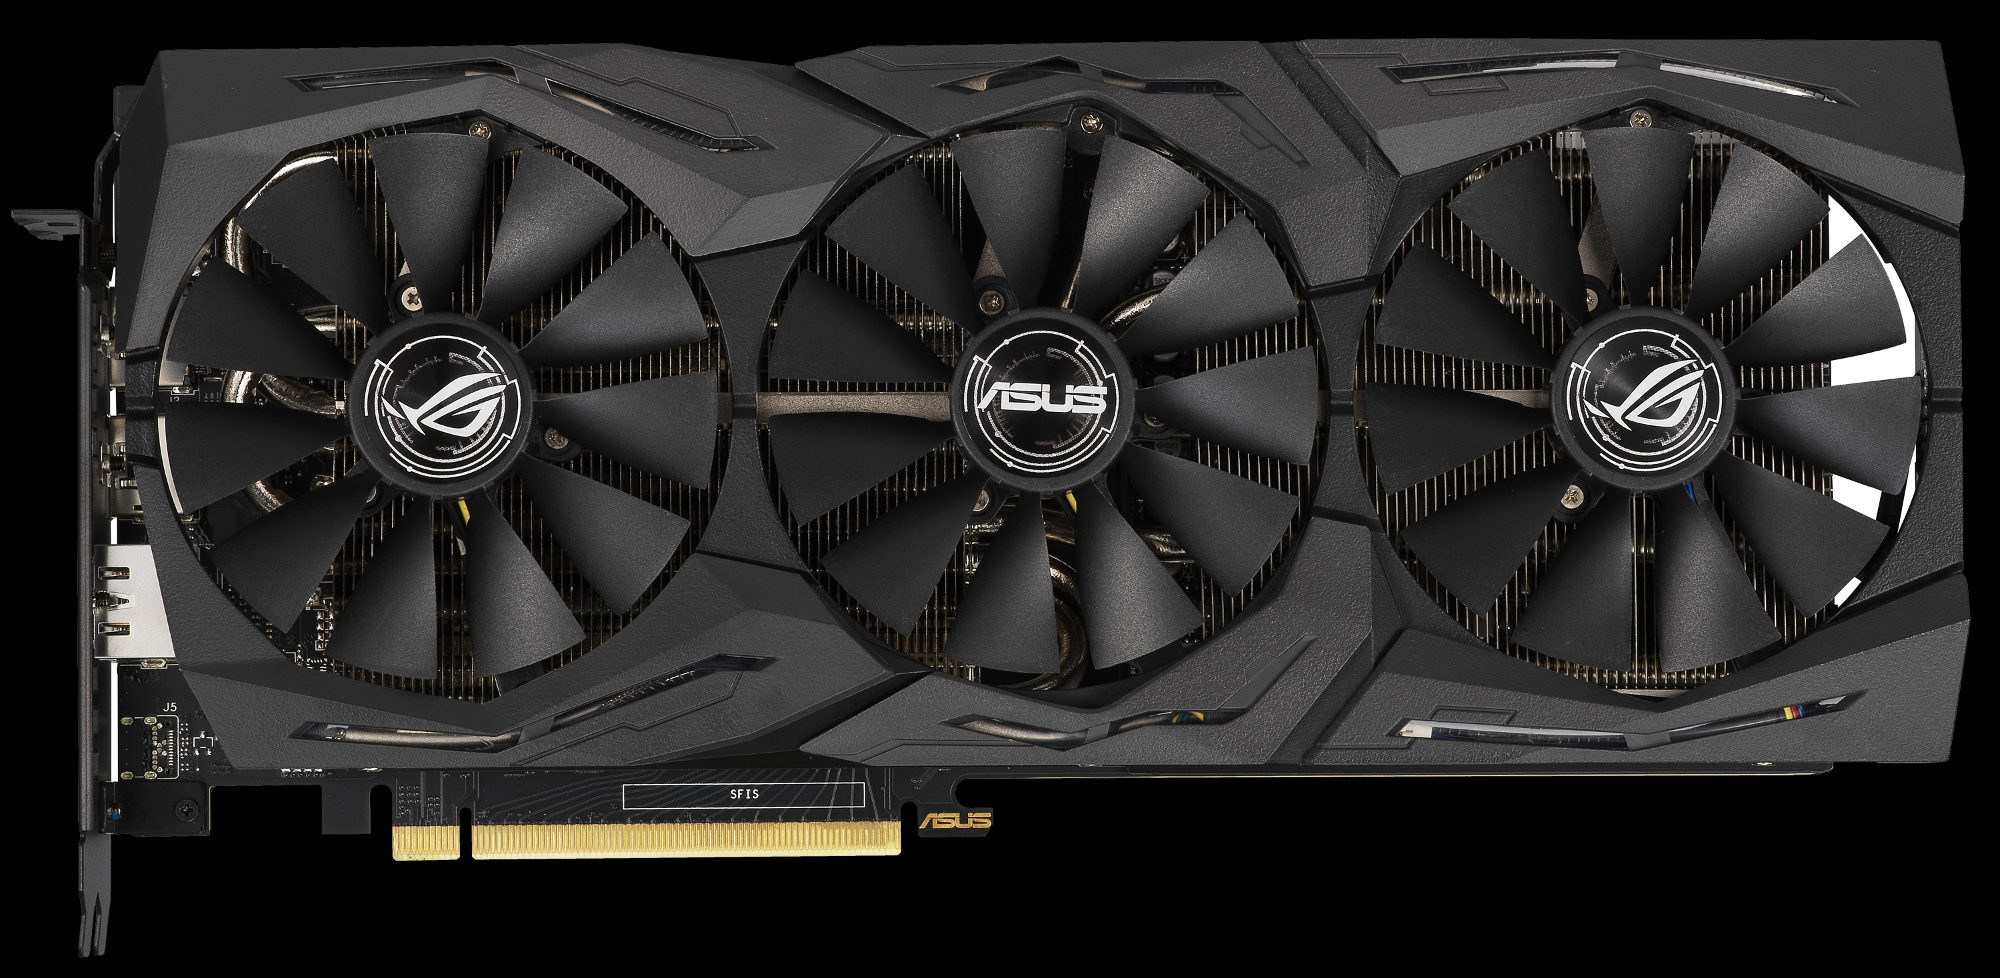 ASUS and ROG GeForce RTX 2060 graphics cards trace rays on a budget